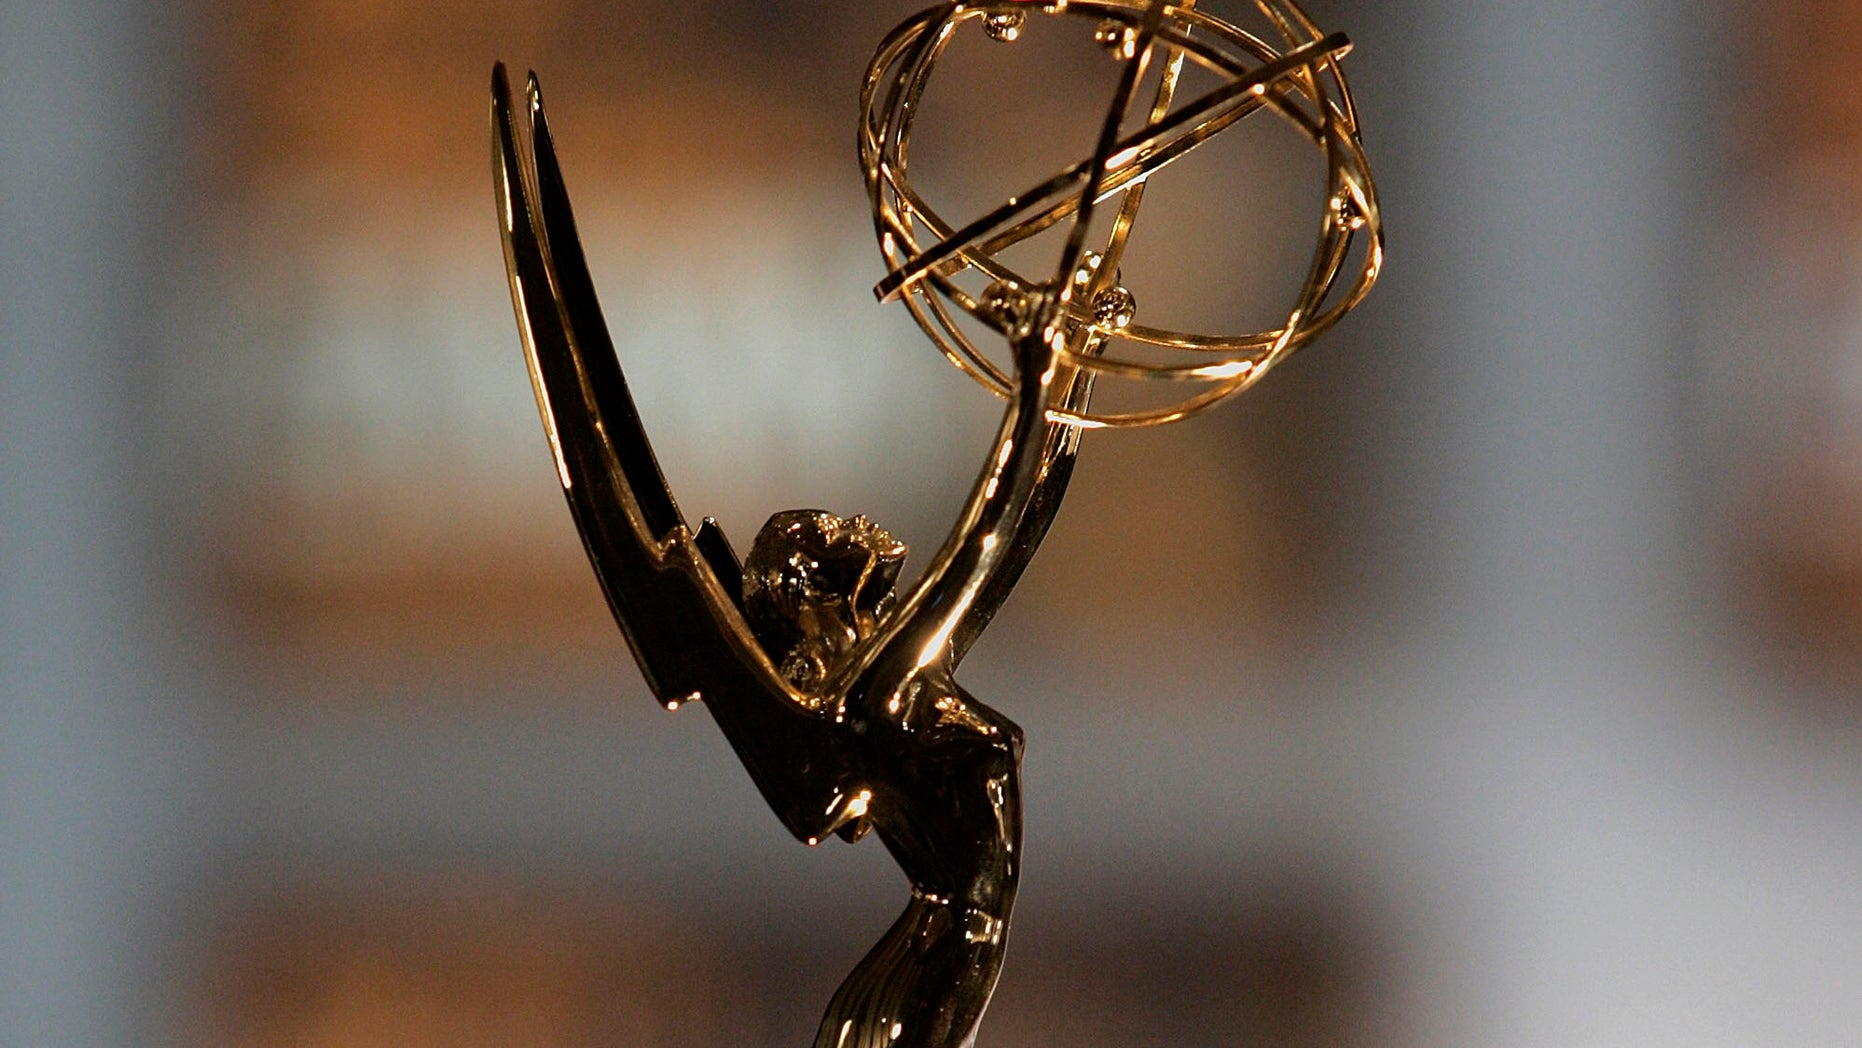 A close up of the Emmy Awards statuette in North Hollywood, California.  (Photo by Vince Bucci/Getty Images)